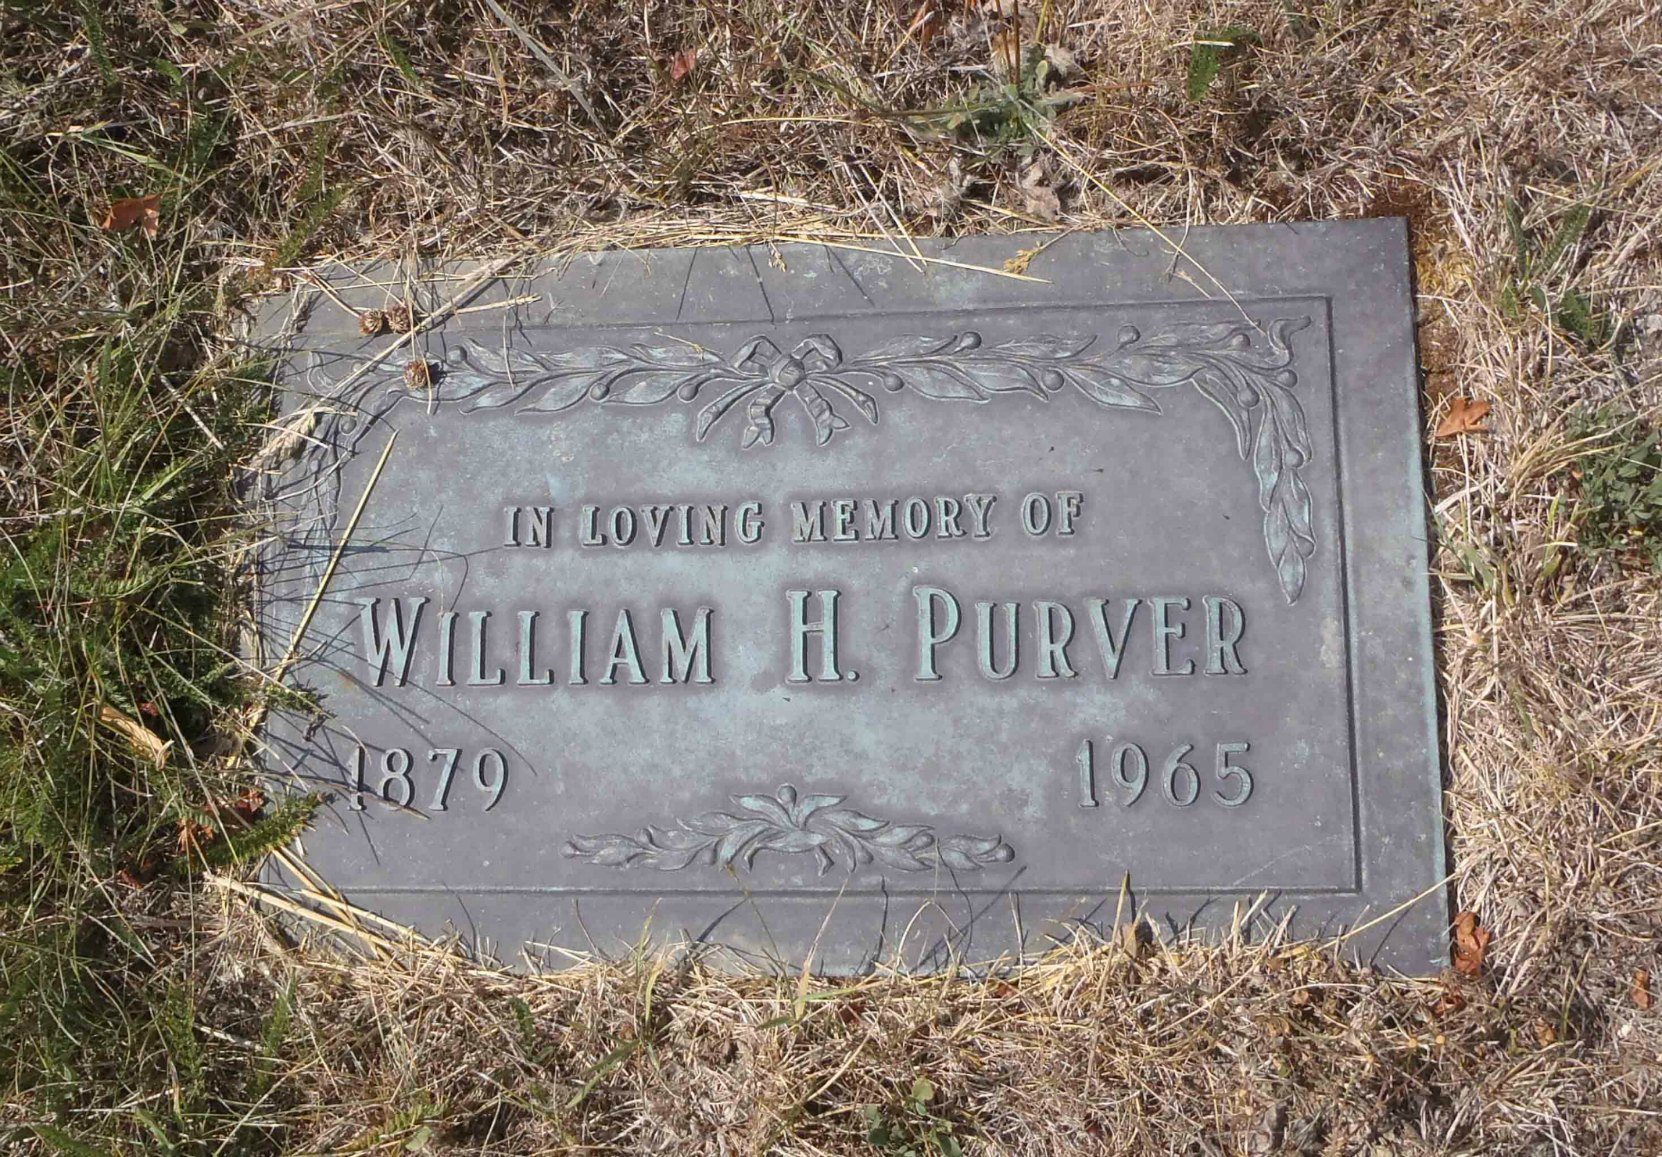 William Purver grave marker, St. Mary's Somenos Anglican Cemetery, North Cowichan, B.C.